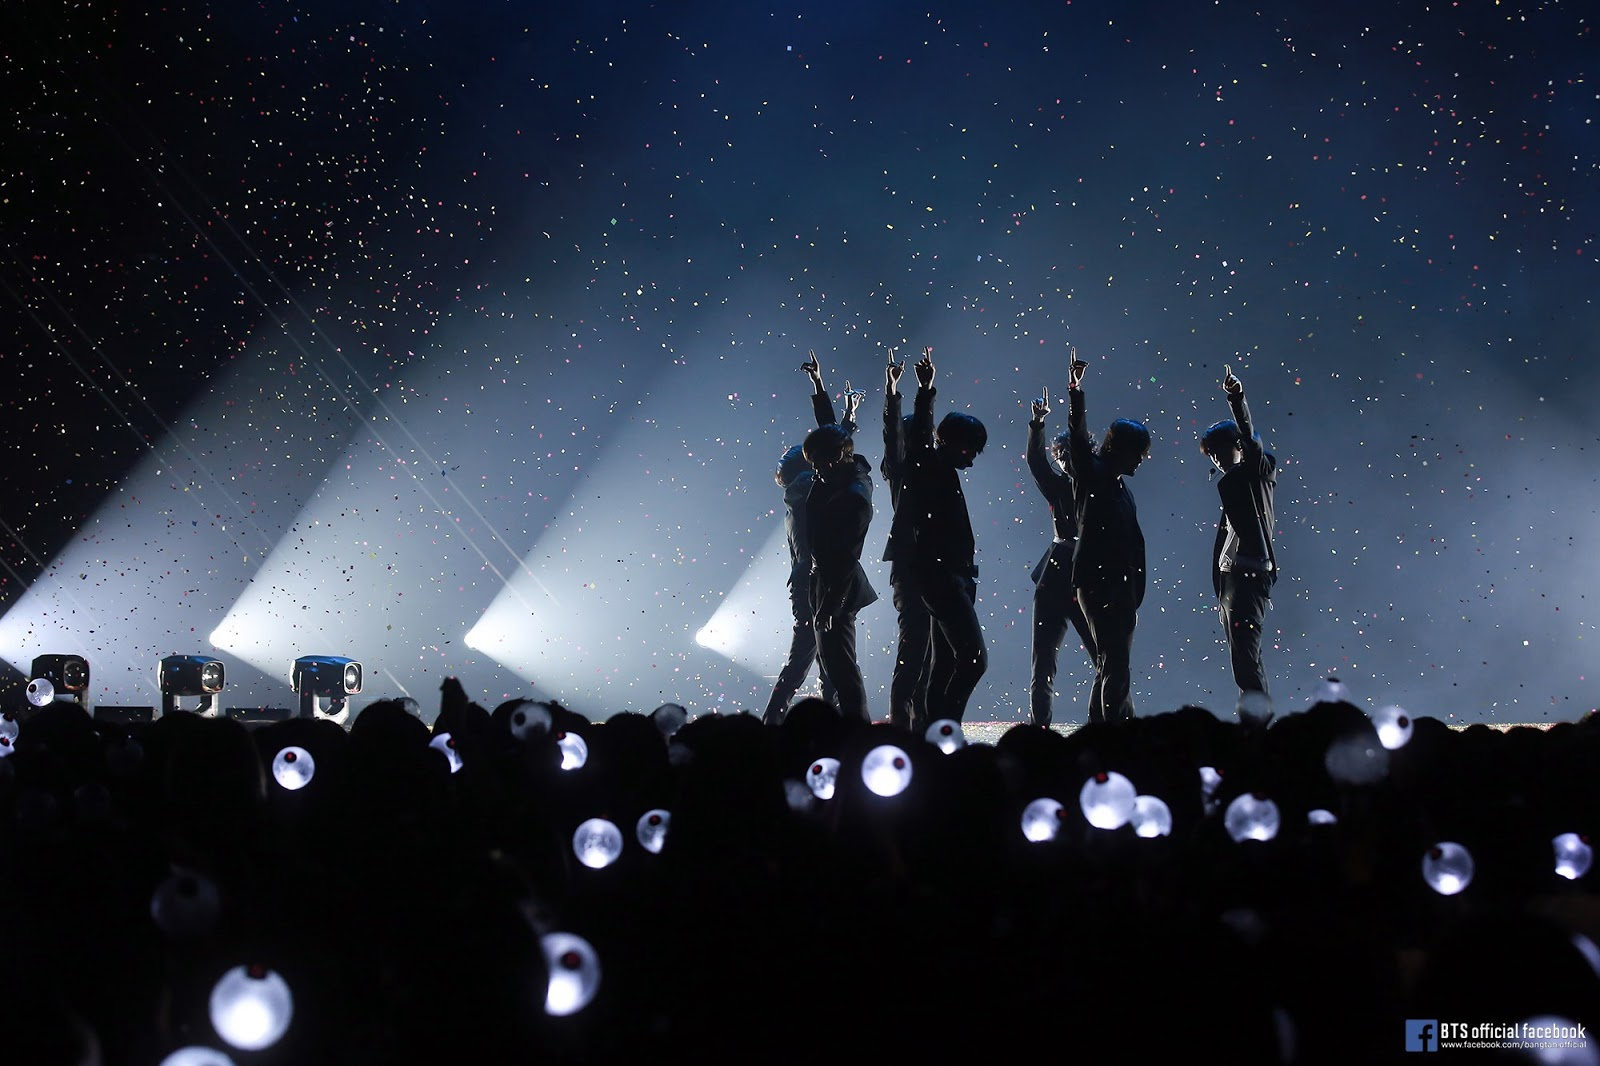 bts-army-group-concert